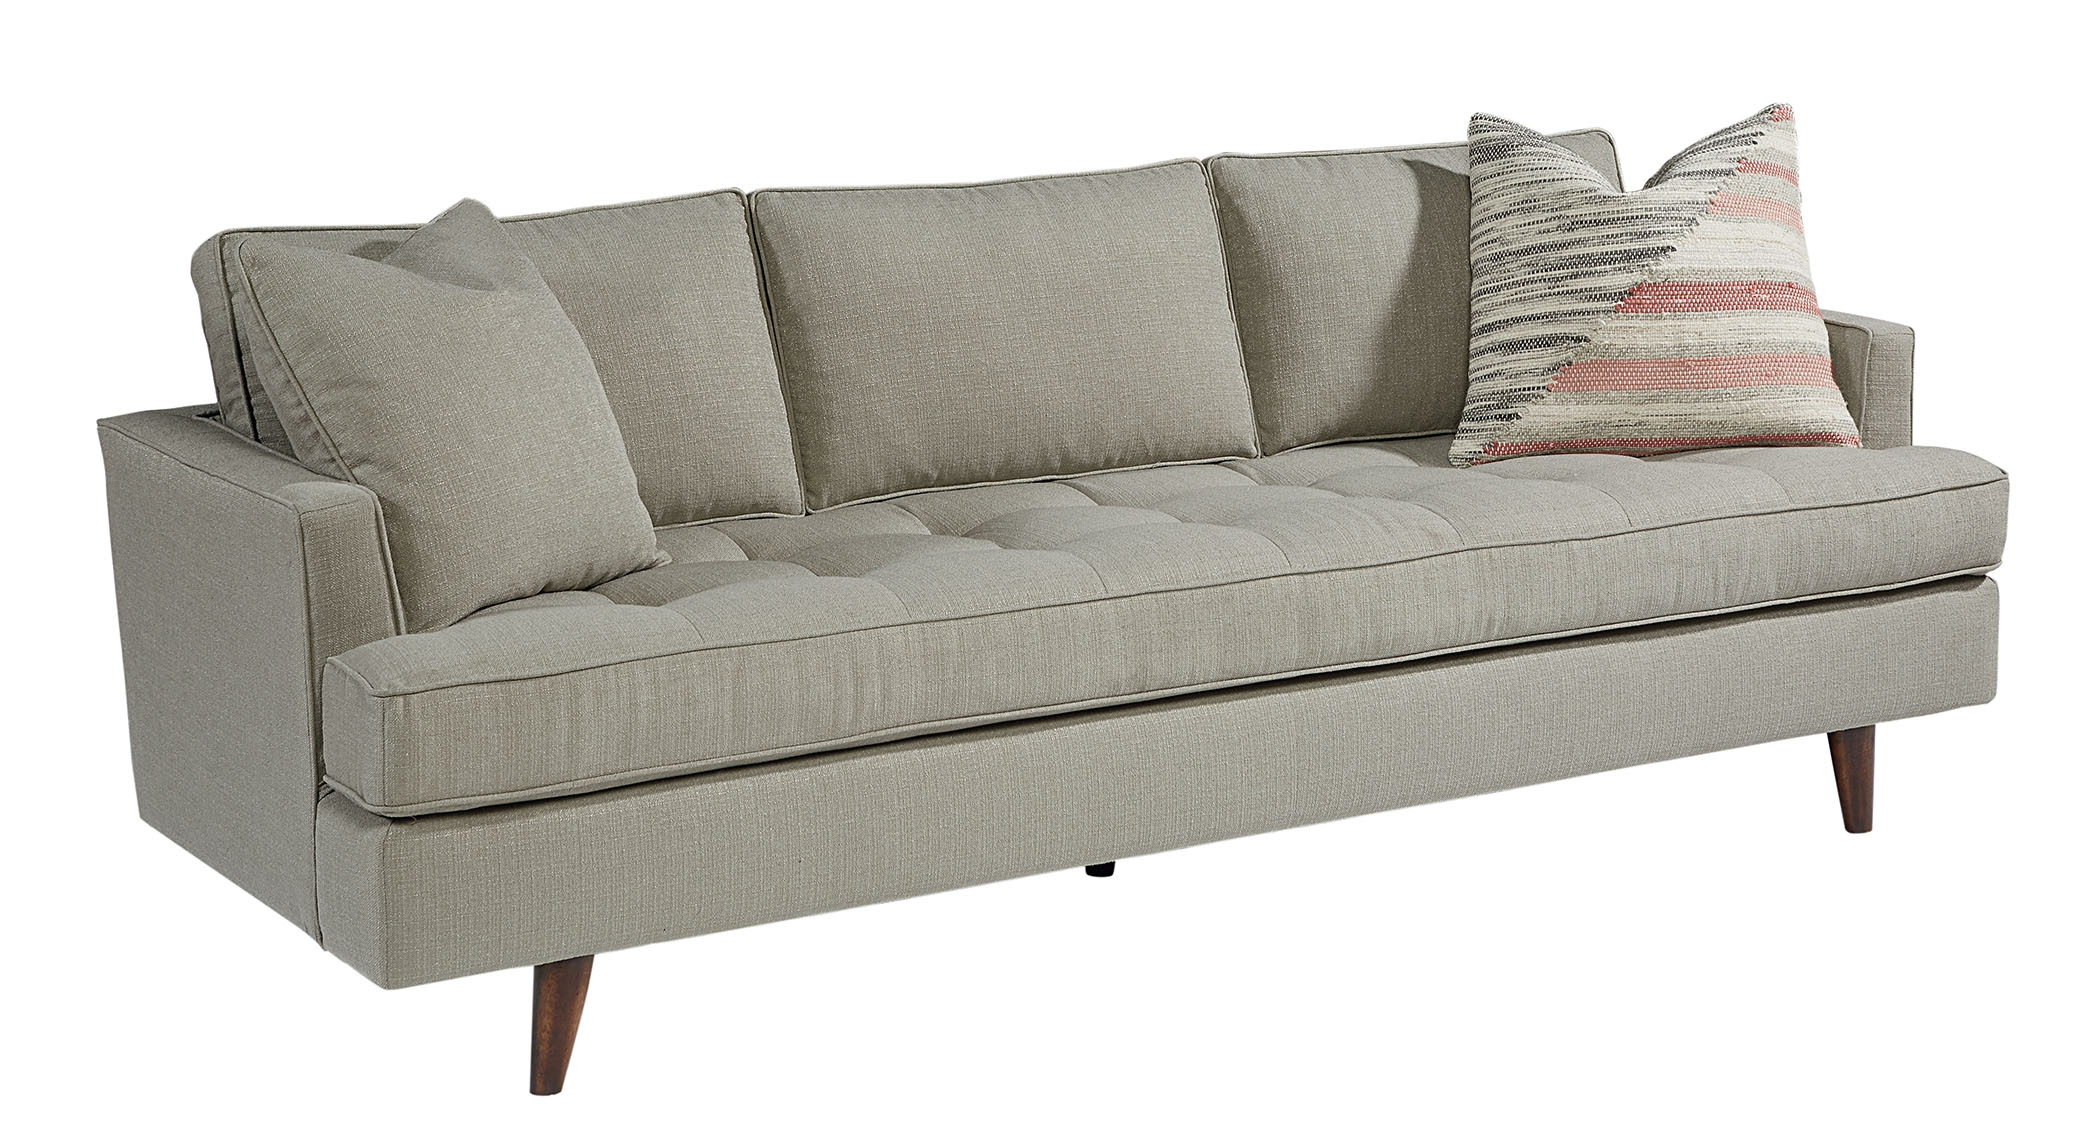 Search Results – Magnolia Home Within Magnolia Home Dapper Fog Sofa Chairs (Image 24 of 25)